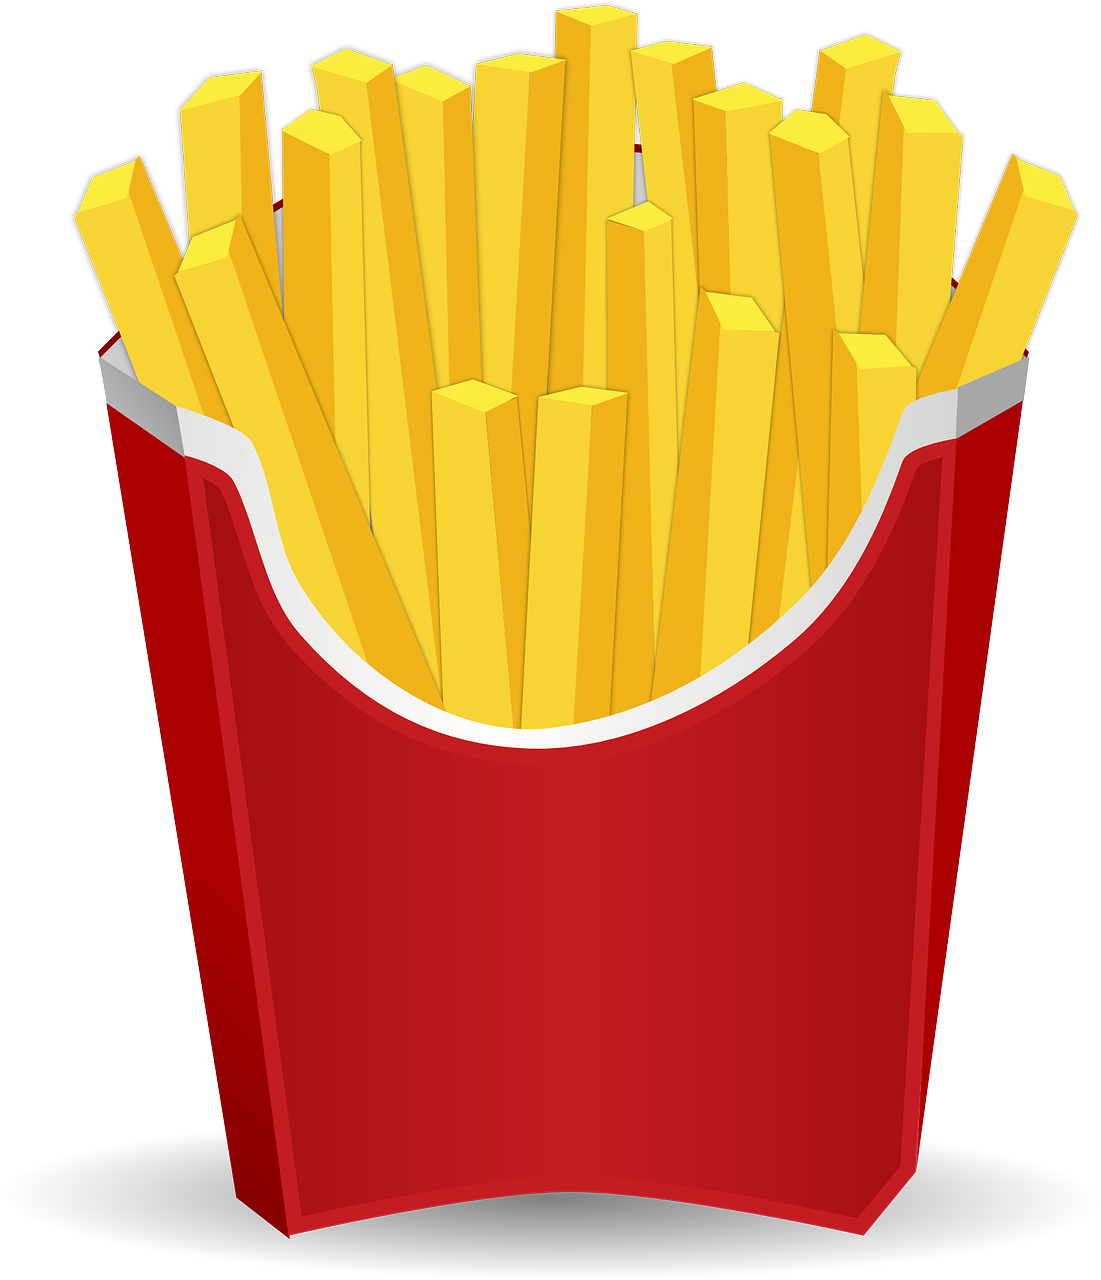 French Fries clipart animated And 0013 image ▷ Chips